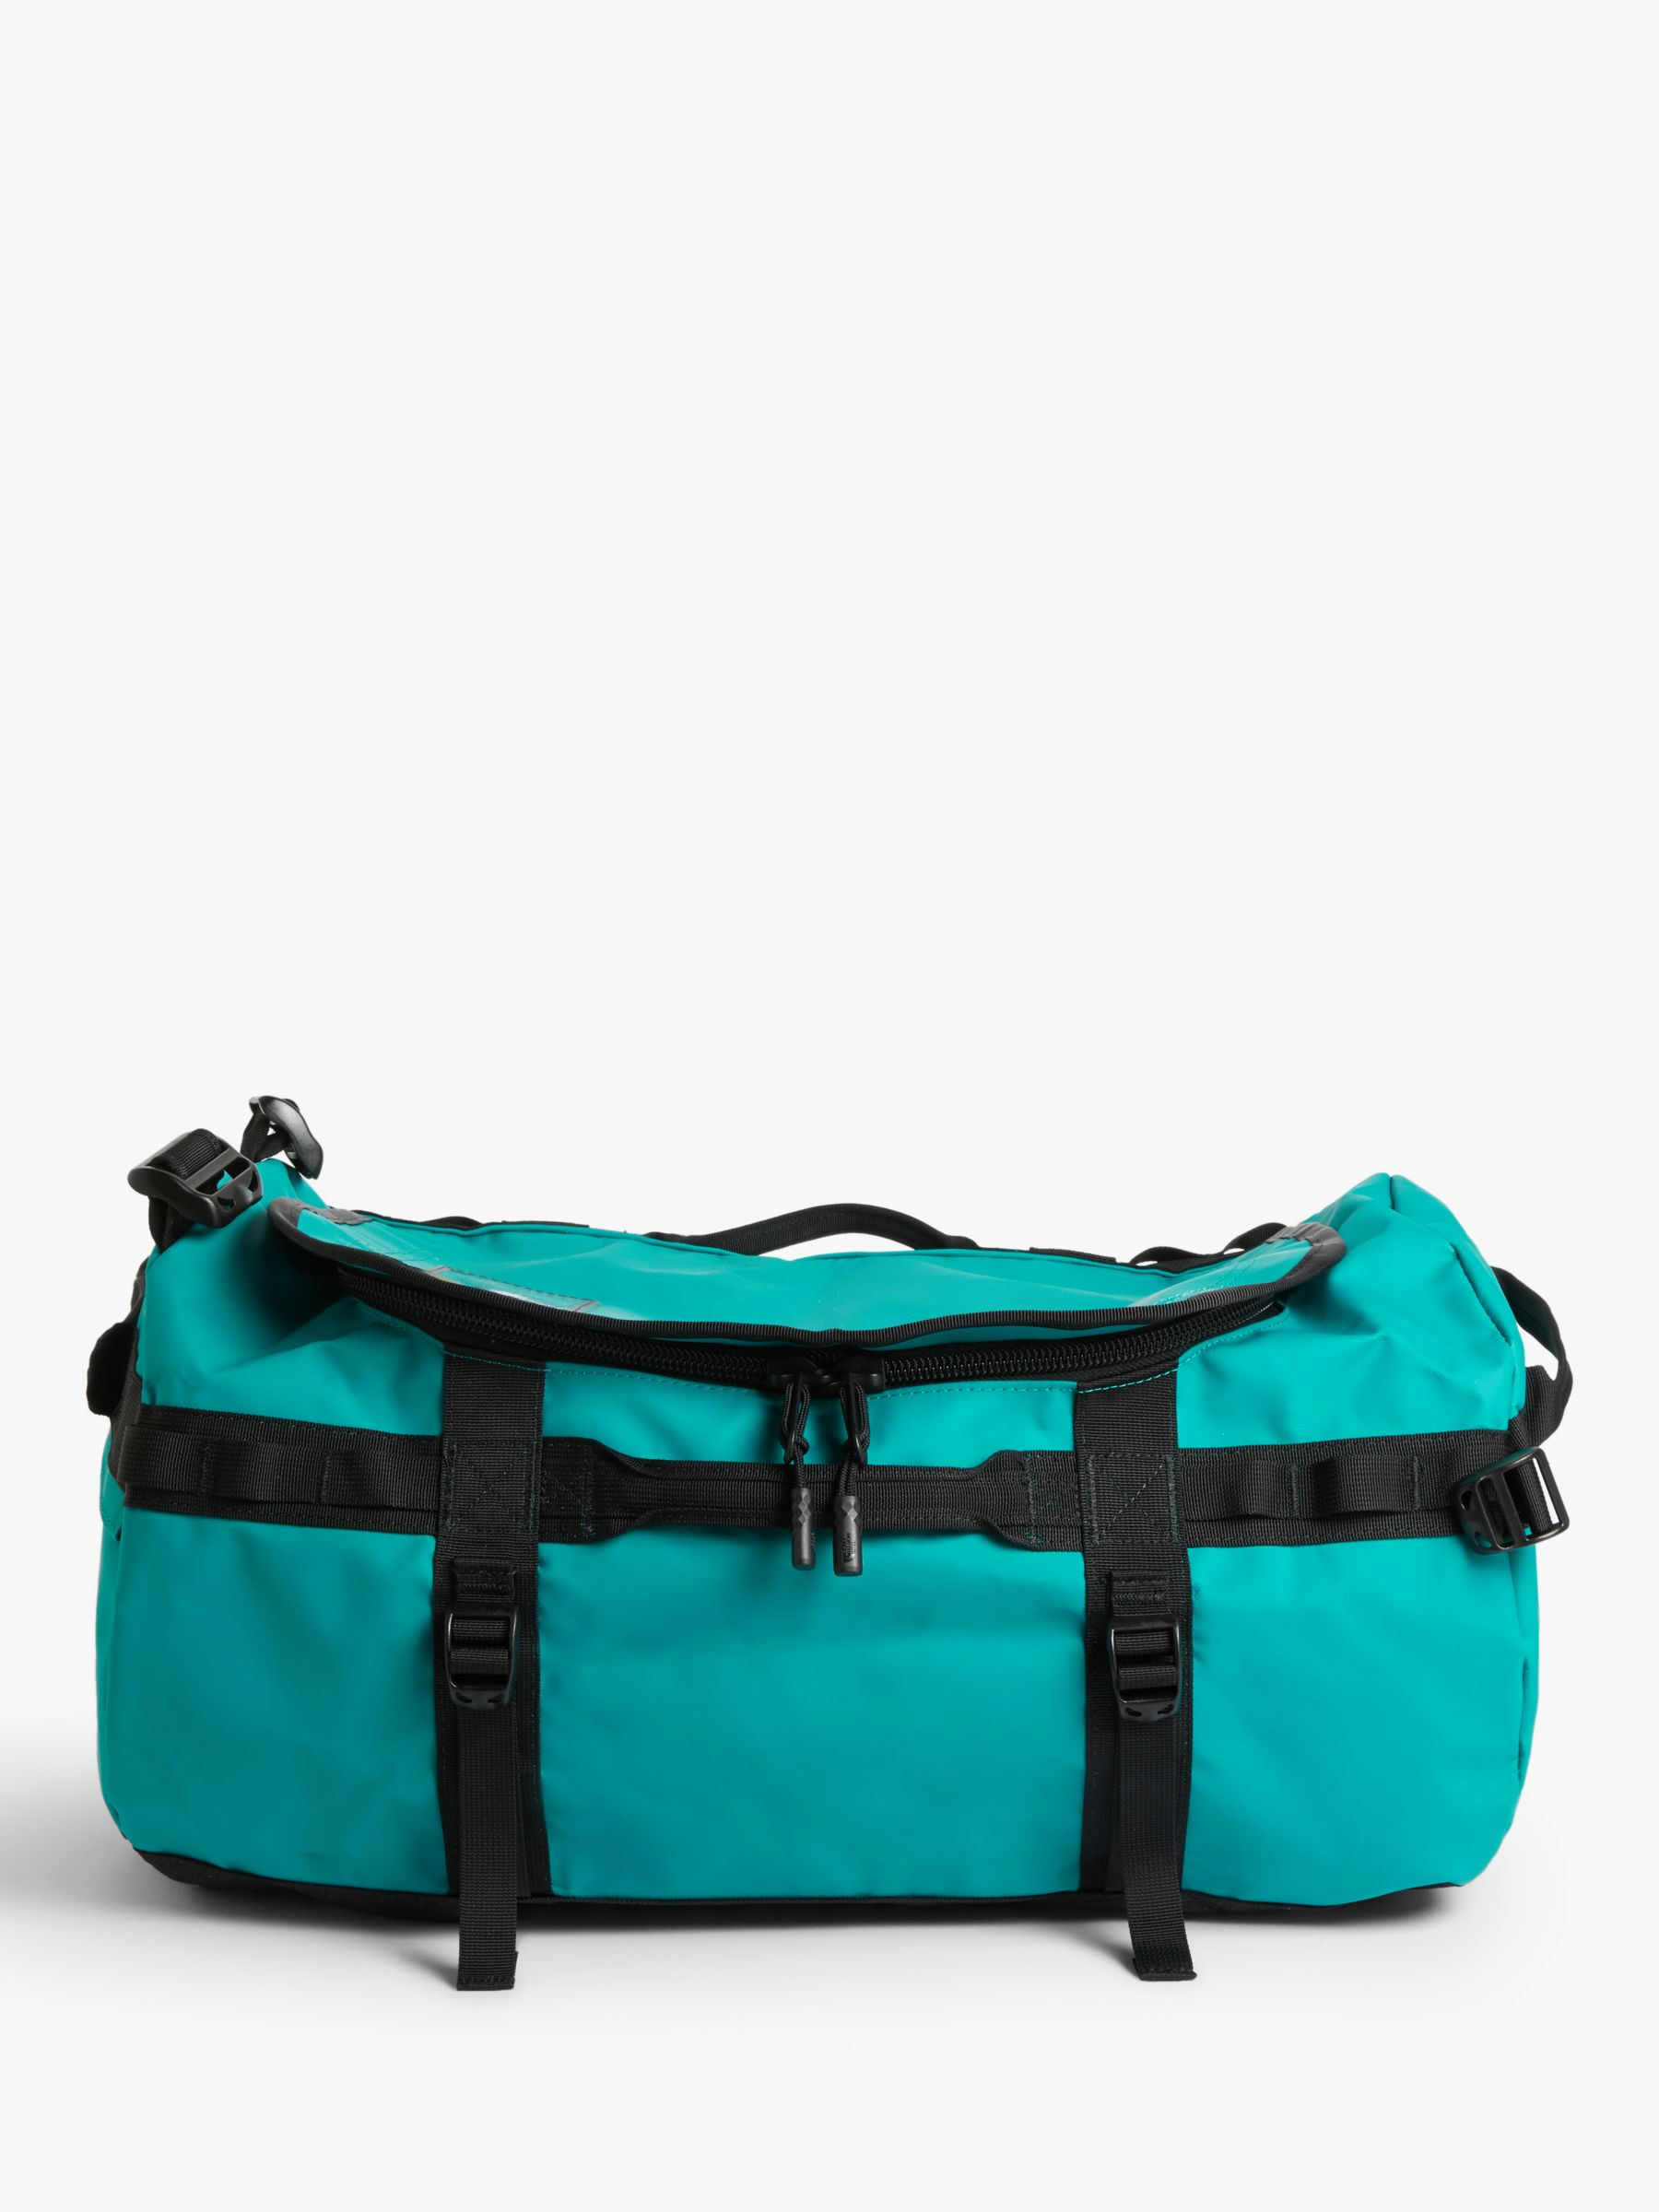 The North Face The North Face Base Camp Duffel Bag, Small, Fanfare Green/TNF Black